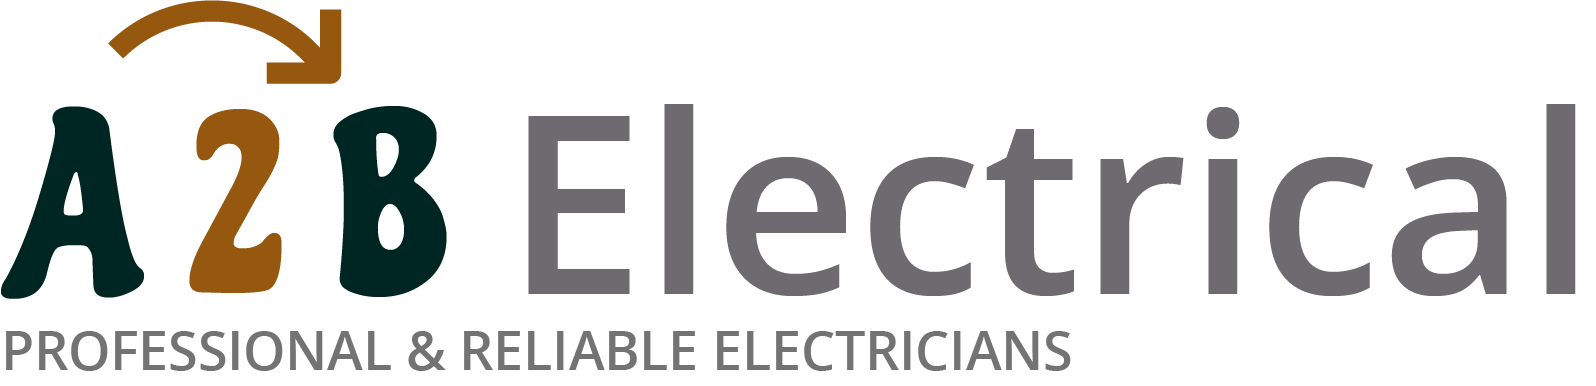 If you have electrical wiring problems in Northwood, we can provide an electrician to have a look for you.